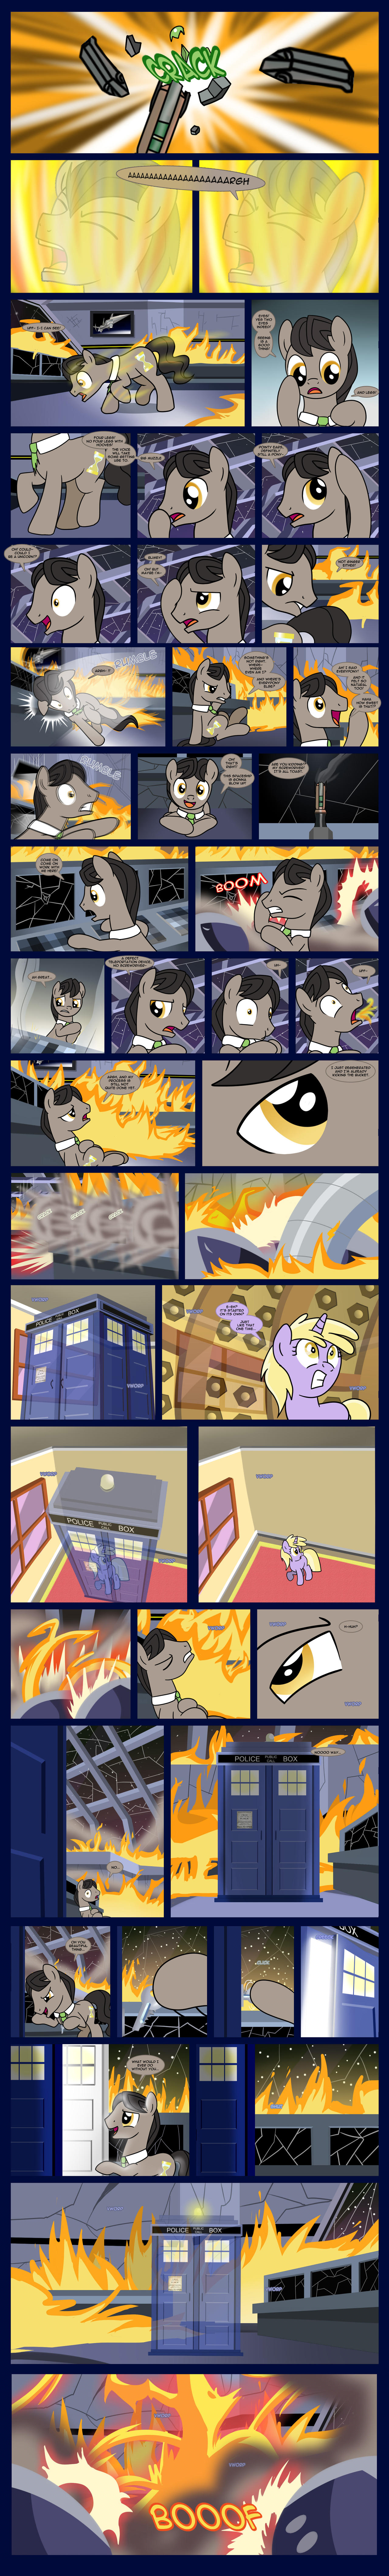 Doctor Whooves - Rebirth Pt 10 by Edowaado